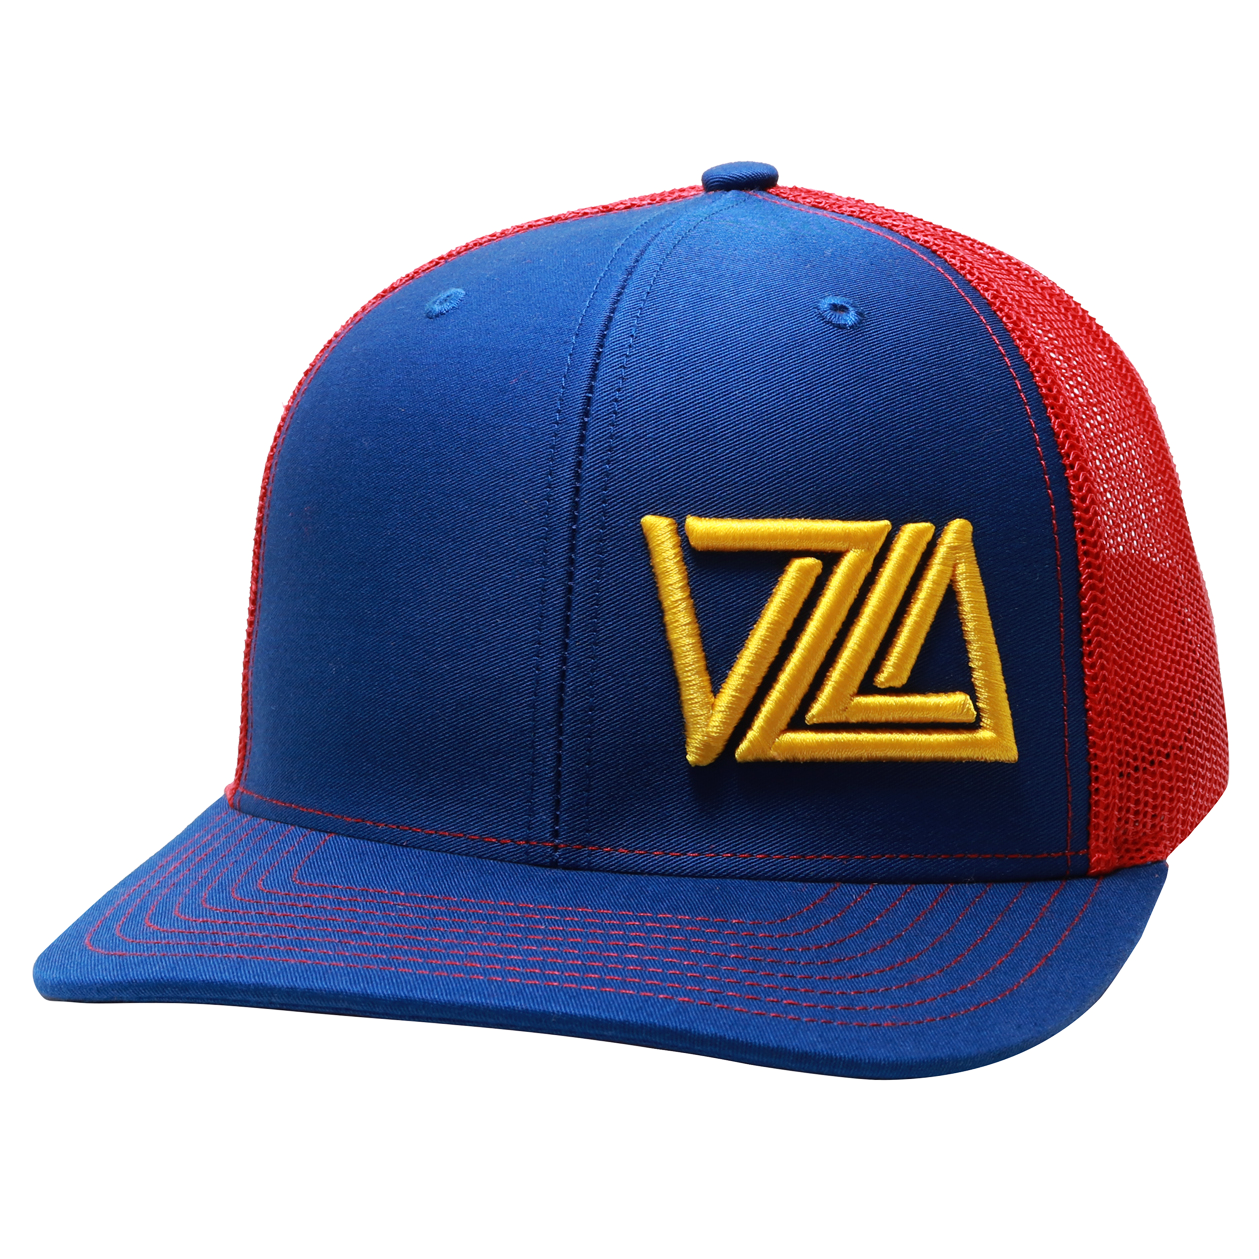 Venezuela Baseball Trucker Cap (Royal/Red)